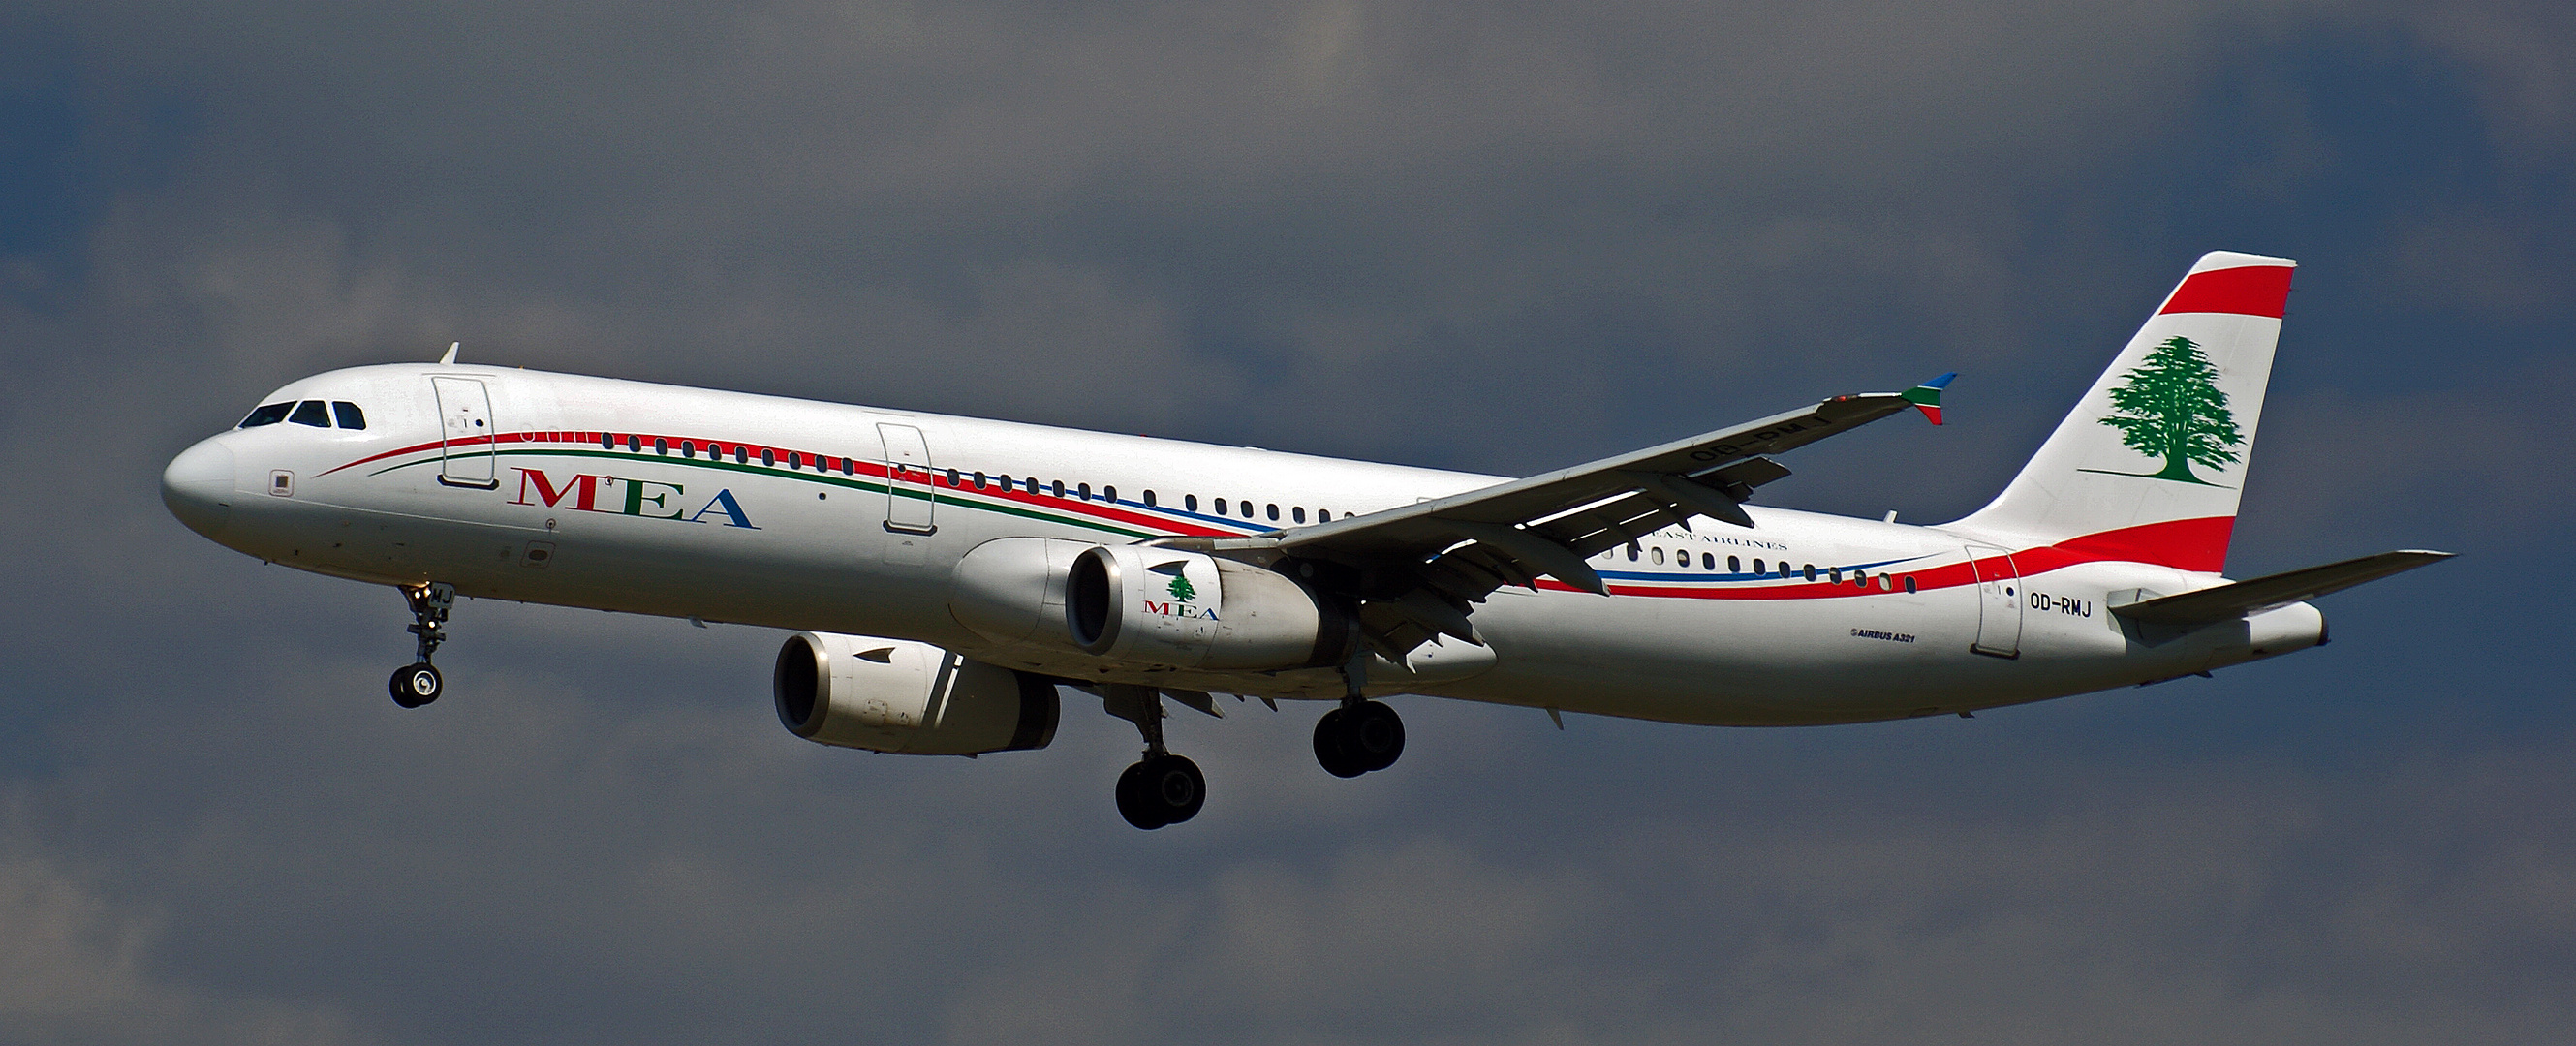 Middle East Airlines